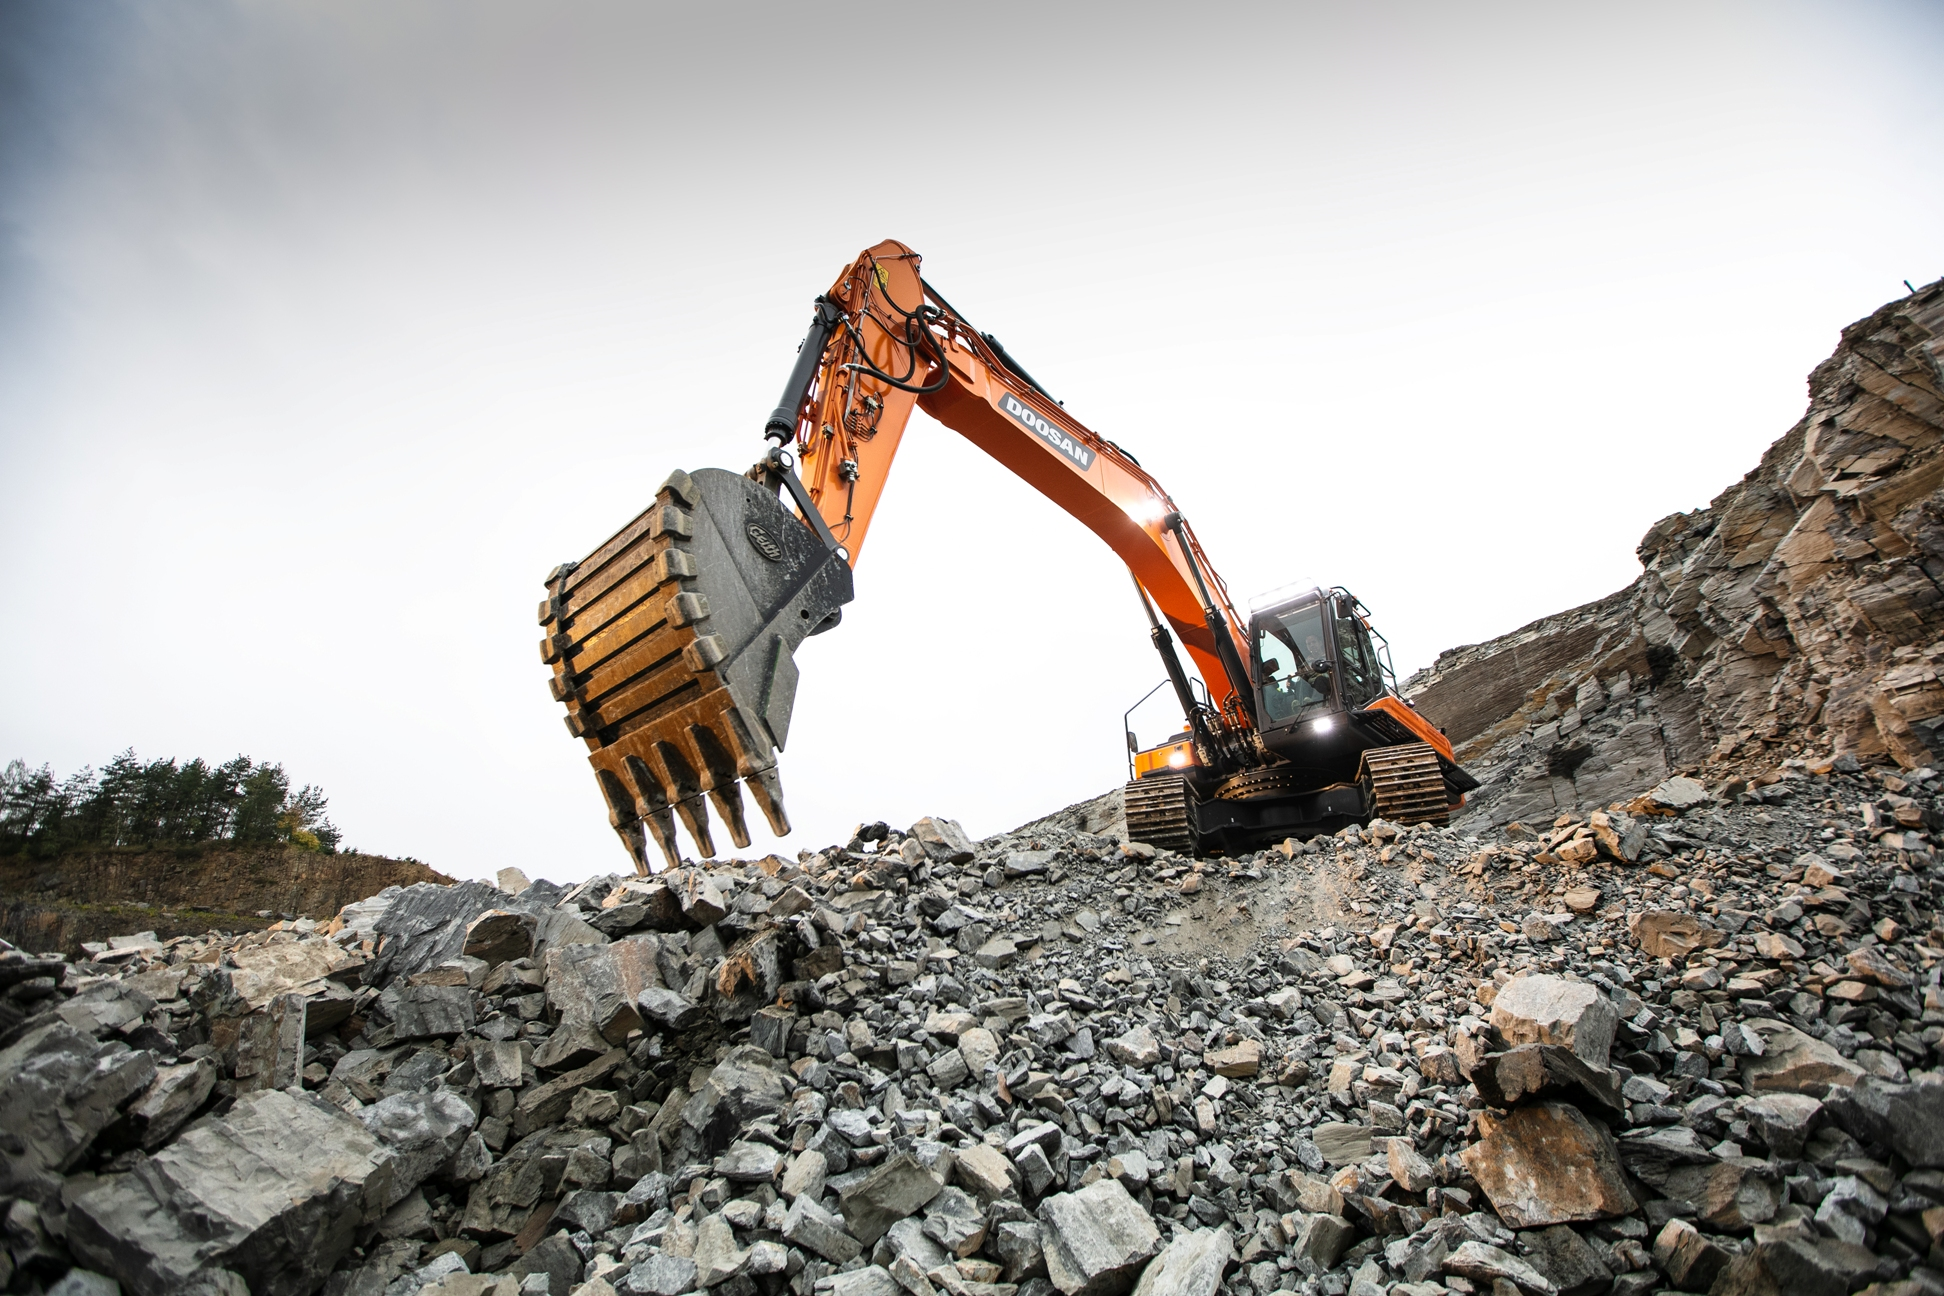 New Doosan DX350LC-7 Excavator Adds Power in Czech Quarry